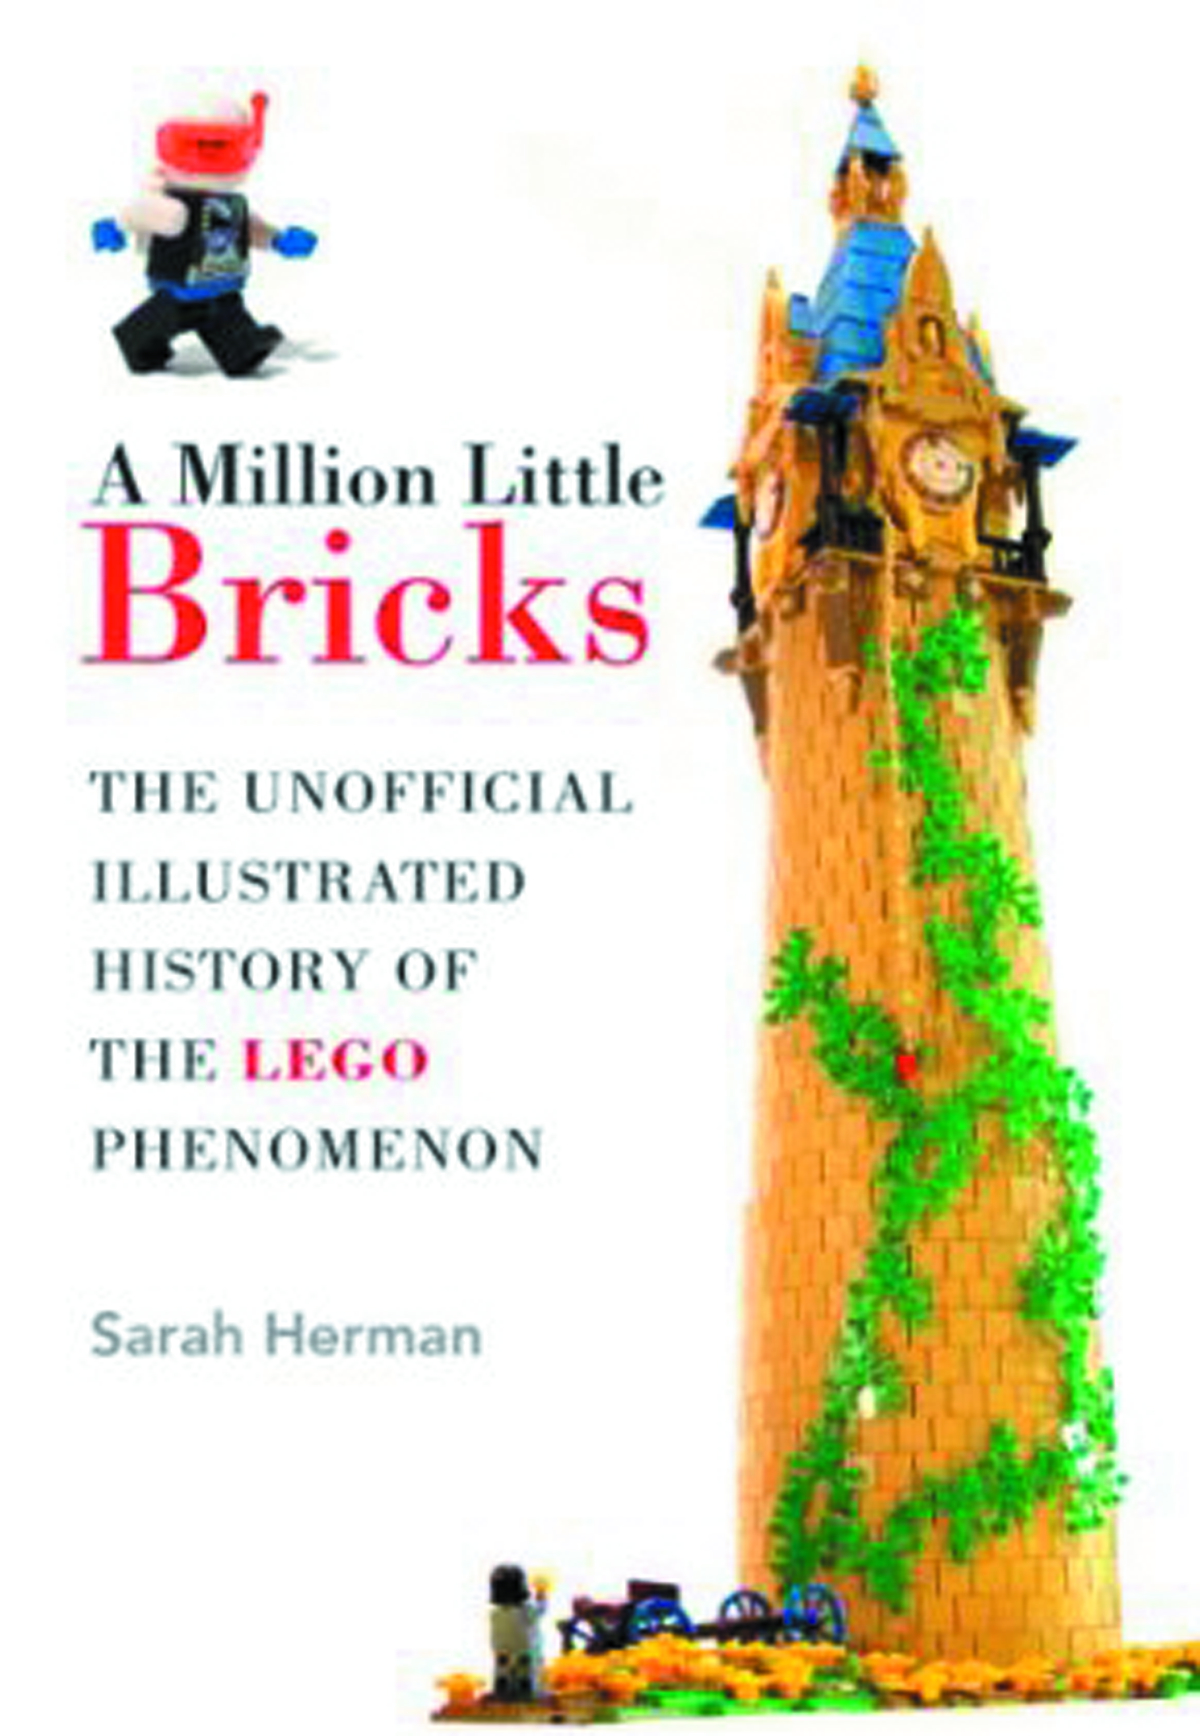 MILLION LITTLE BRICKS UNOFF ILLUS HIST LEGO PHENOMENON